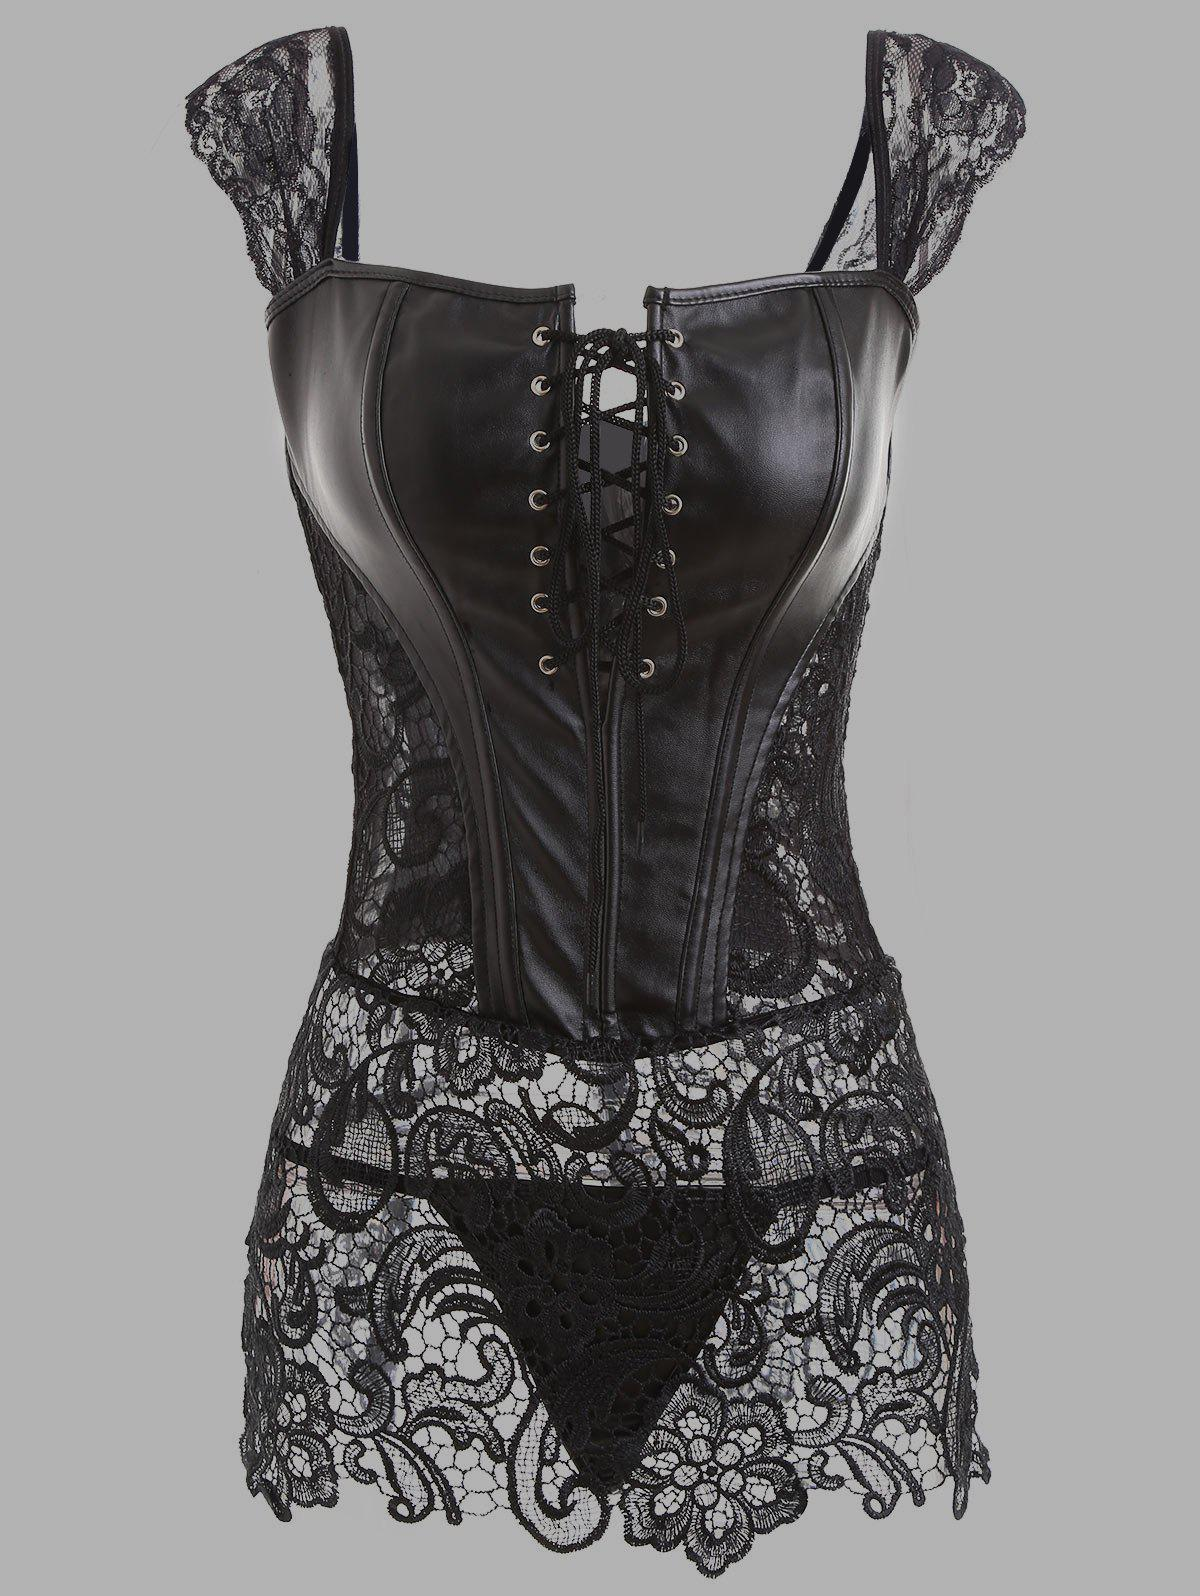 Lace Panel See Through Plus Size Leather CorsetWOMEN<br><br>Size: 4XL; Color: BLACK; Material: Faux Leather; Pattern Type: Solid; Embellishment: Criss-Cross,Hollow Out,Lace,Zippers; Weight: 0.3500kg; Package Contents: 1 x Corset Top 1 x G-string;